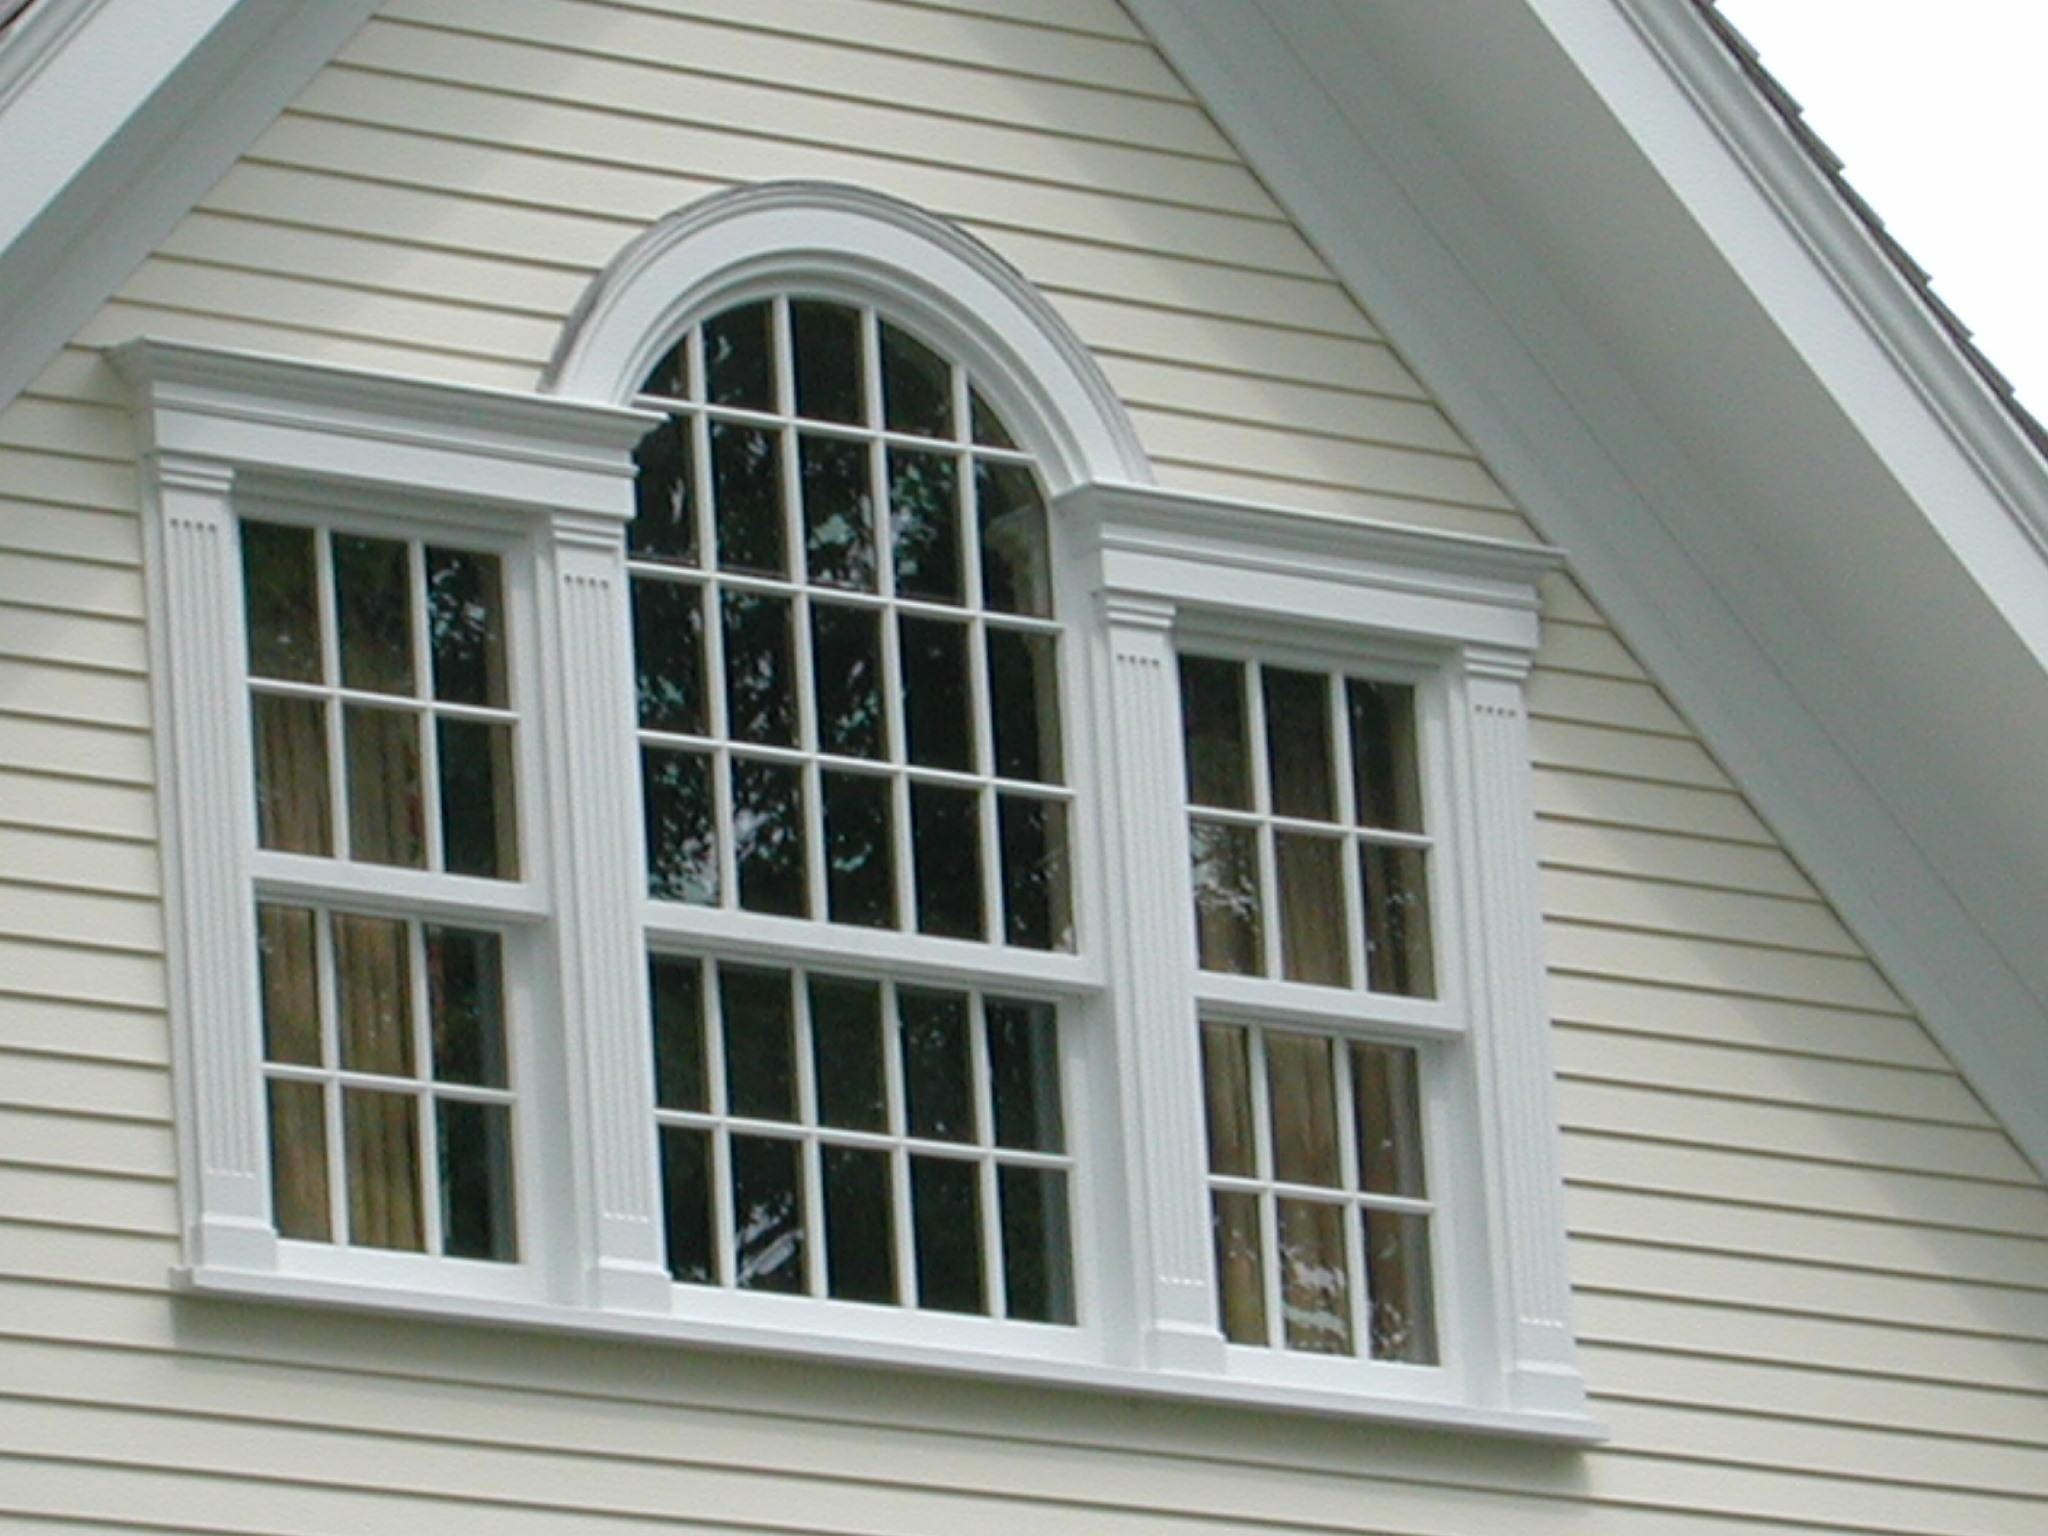 Window opening with three white double hung windows